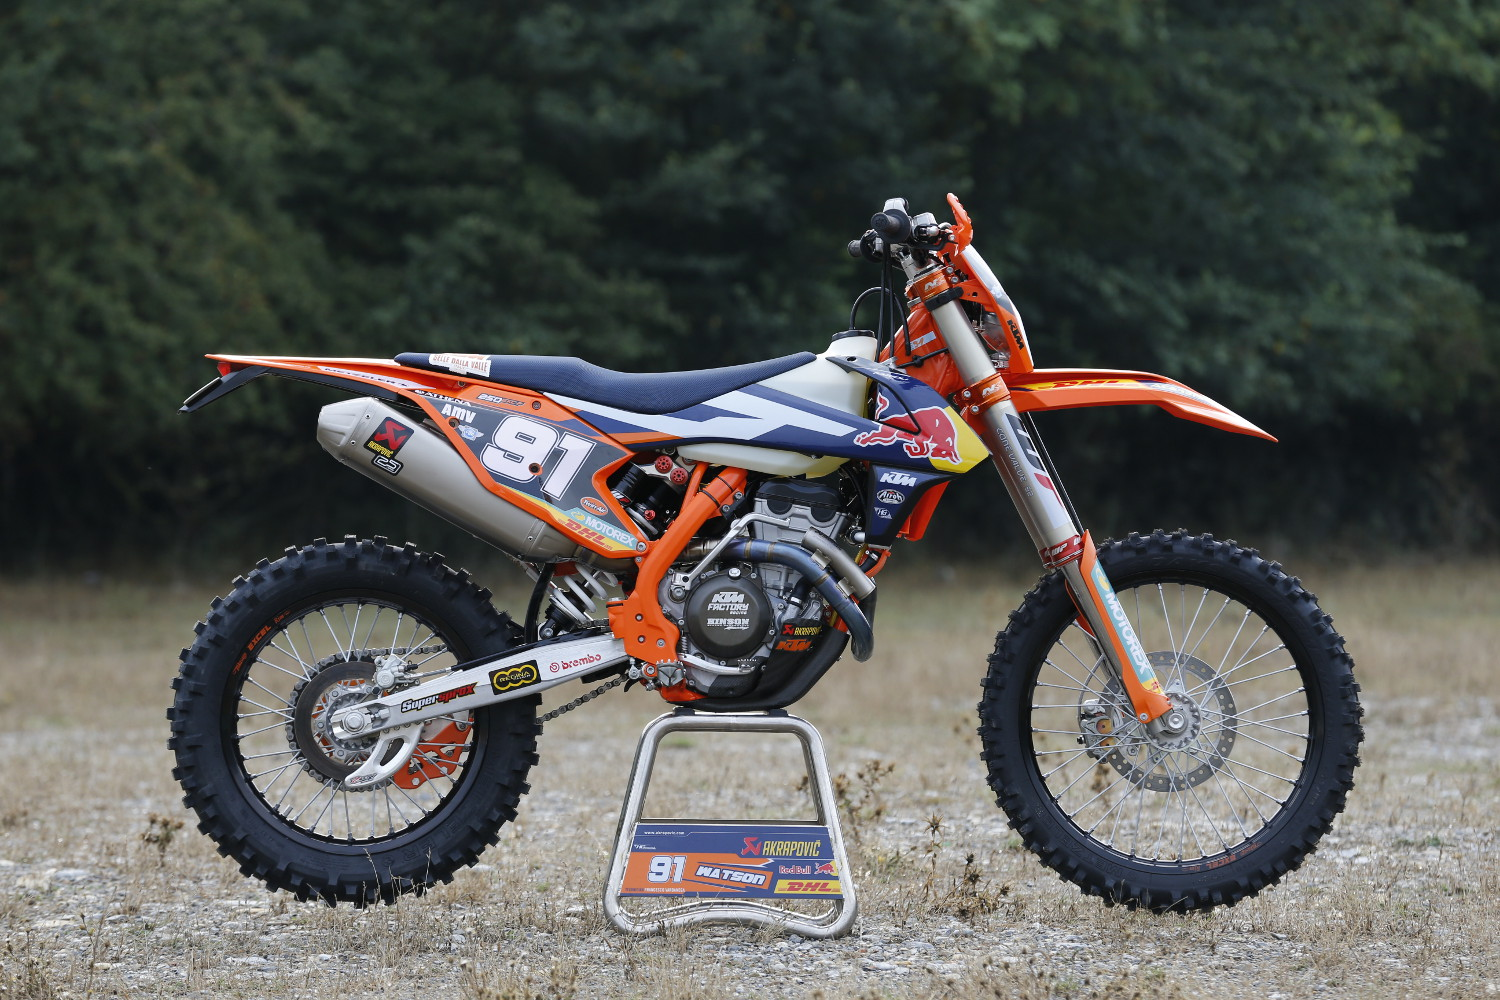 _ktm-enduro-factory-bike-test-2016_0425